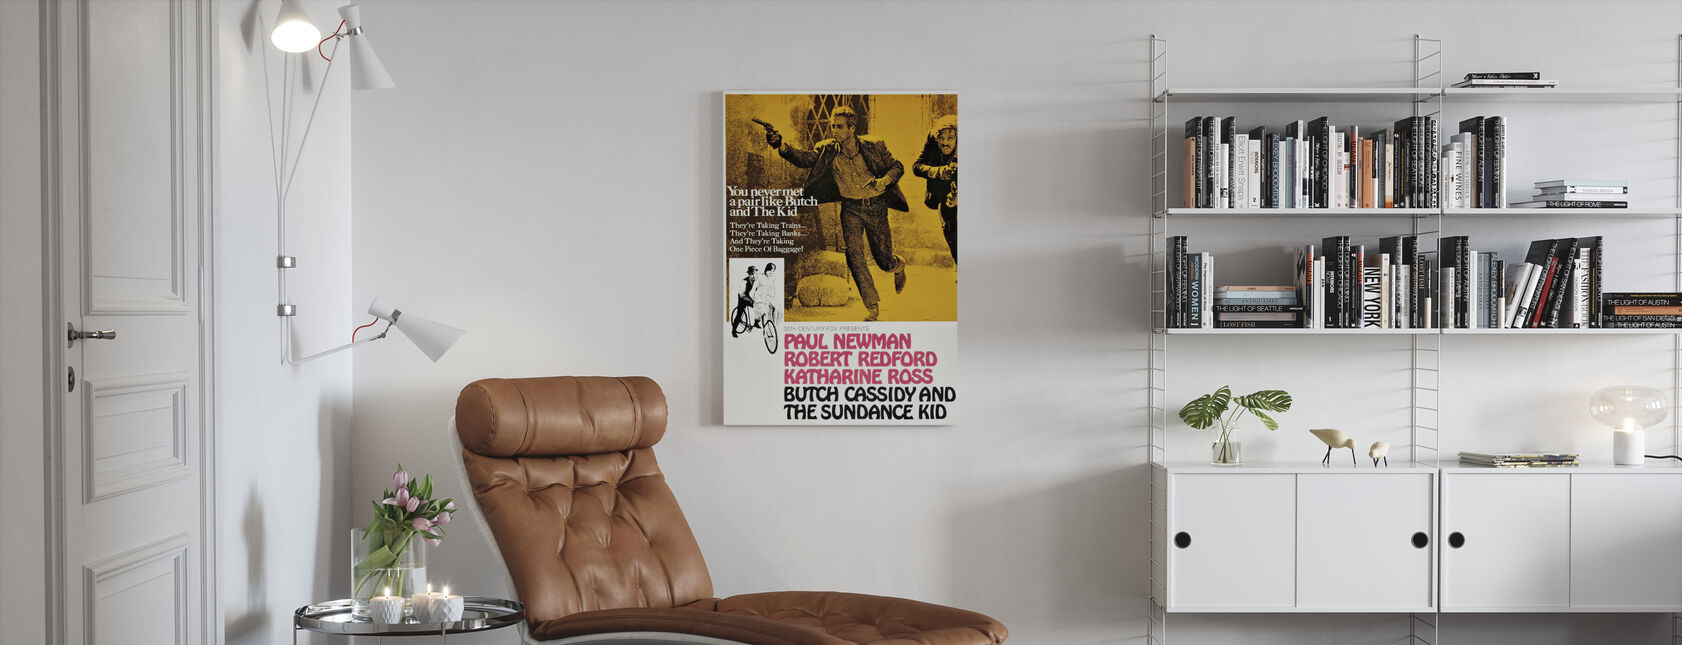 Butch Cassidy and the Sundance Kid - Canvas print - Living Room